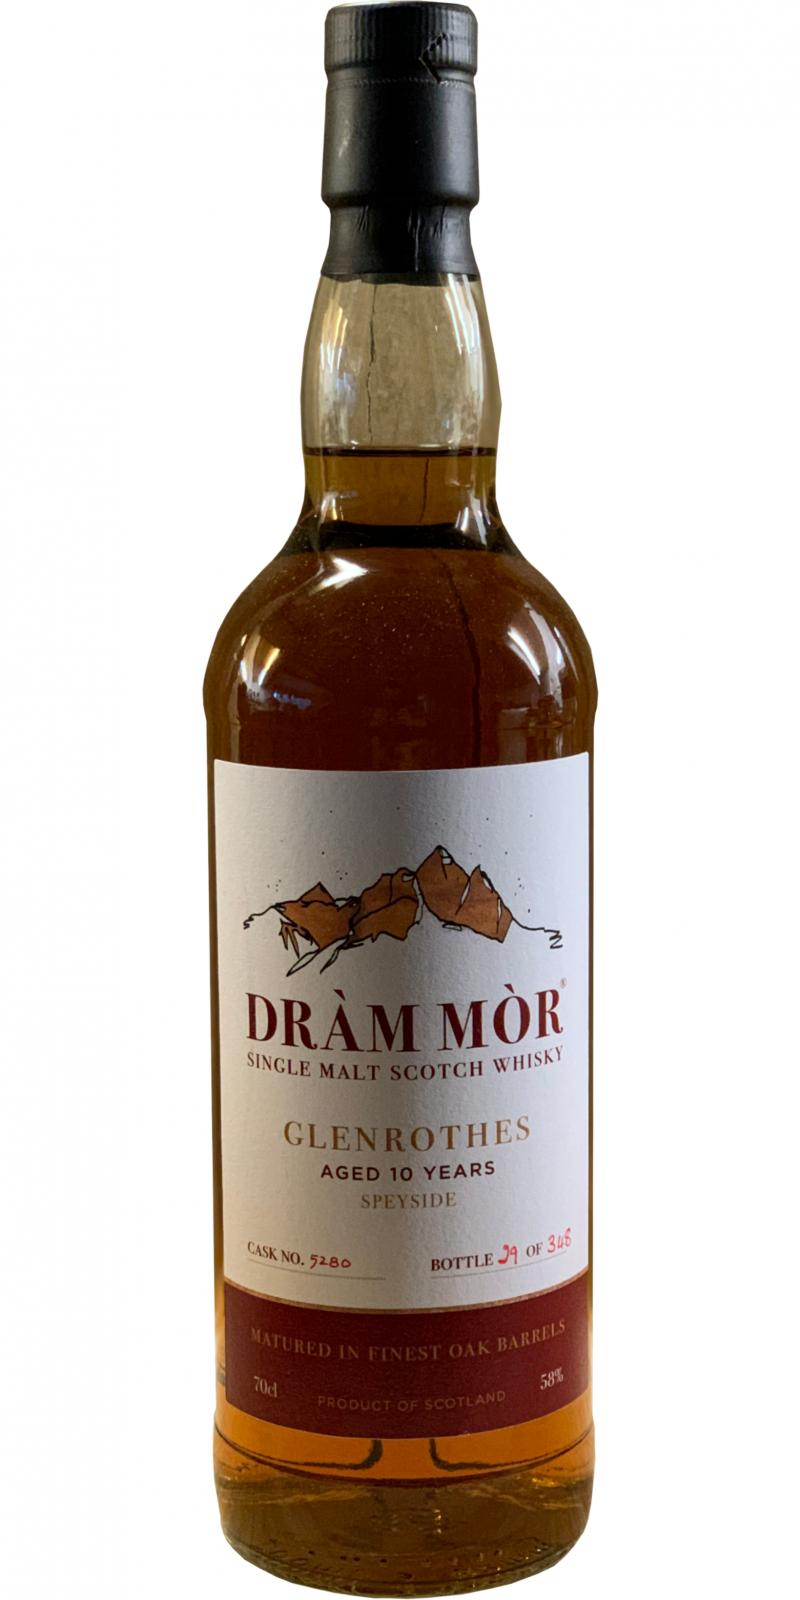 Glenrothes 10-year-old DMor